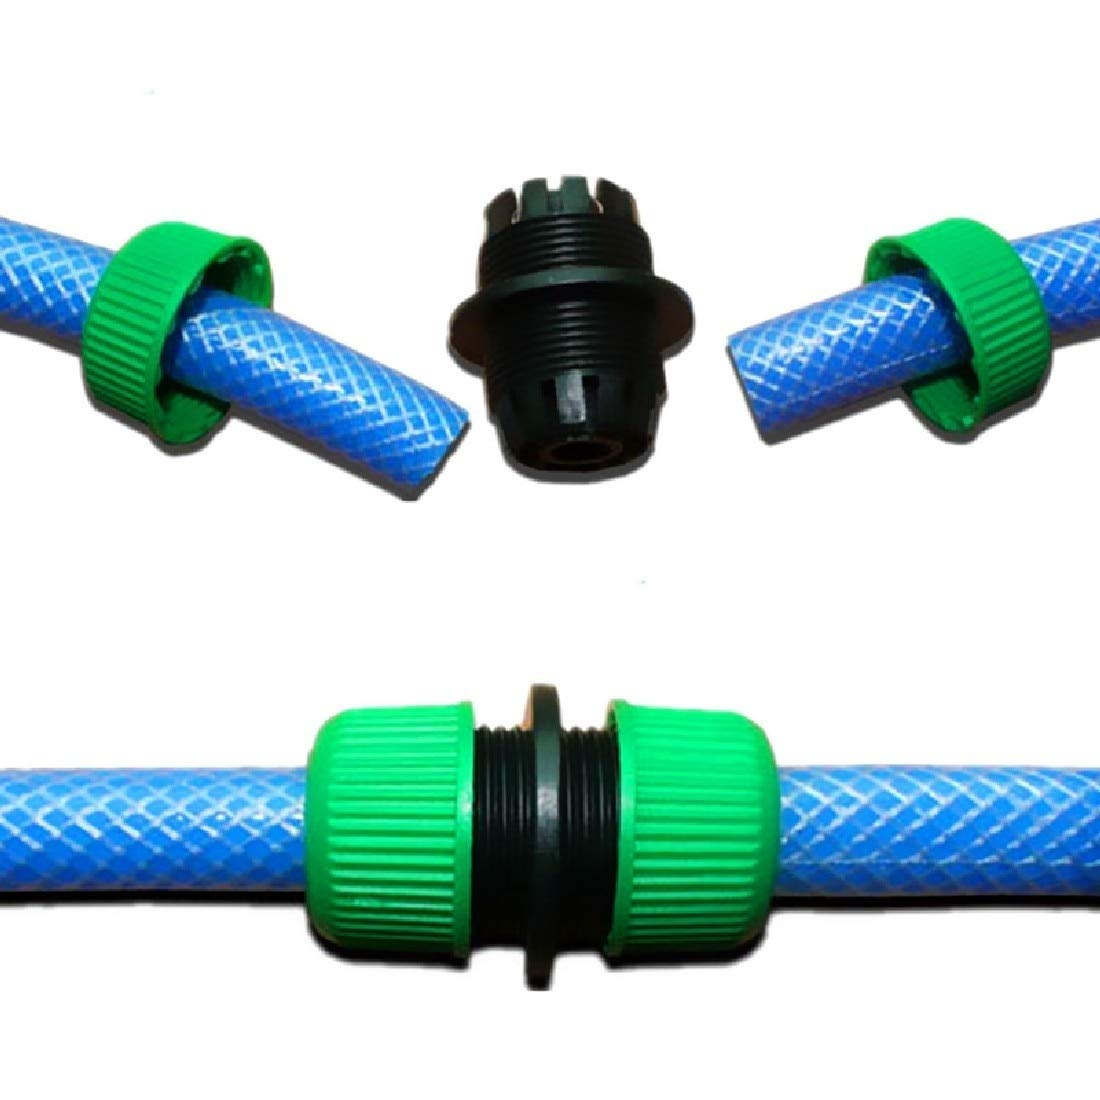 1/2'' Garden Water Hose Connector Pipe Quick Connectors Joining Mender Repair Leaking Joiner Connector Adapter Basico